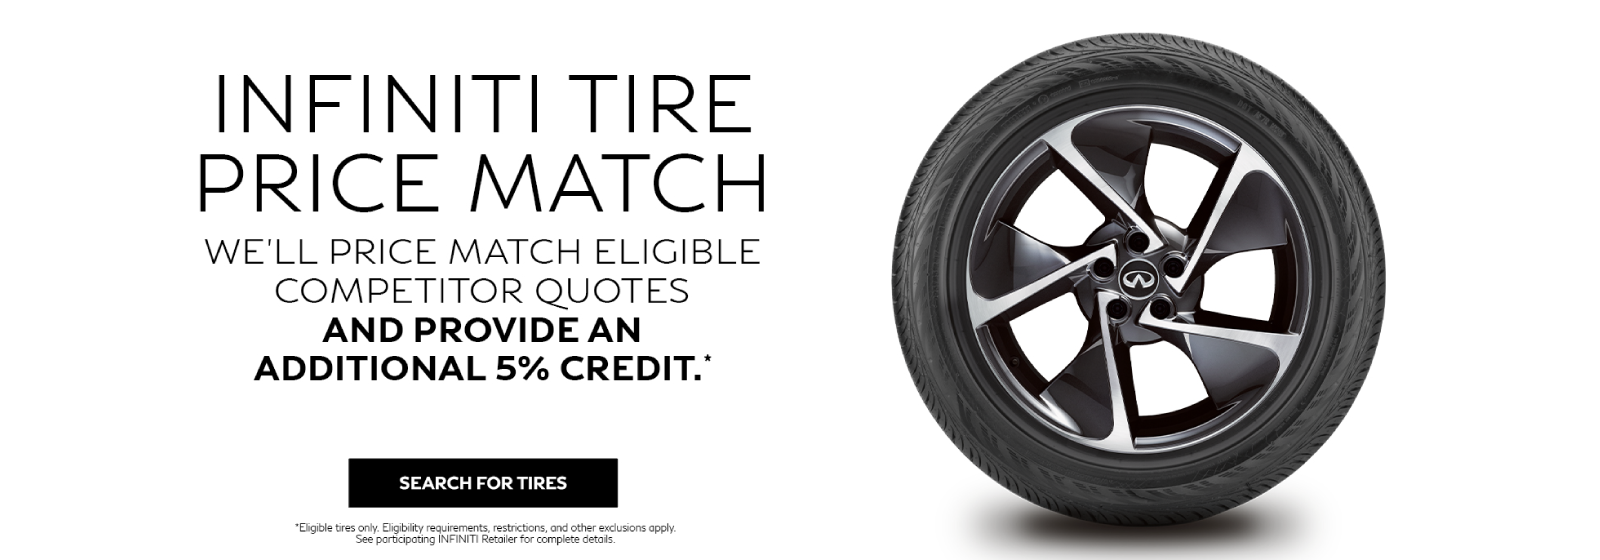 INFINITI Tire Price Match. We'll price match eligible competitor quotes and provide an additional 5% credit. See retailer for complete details.